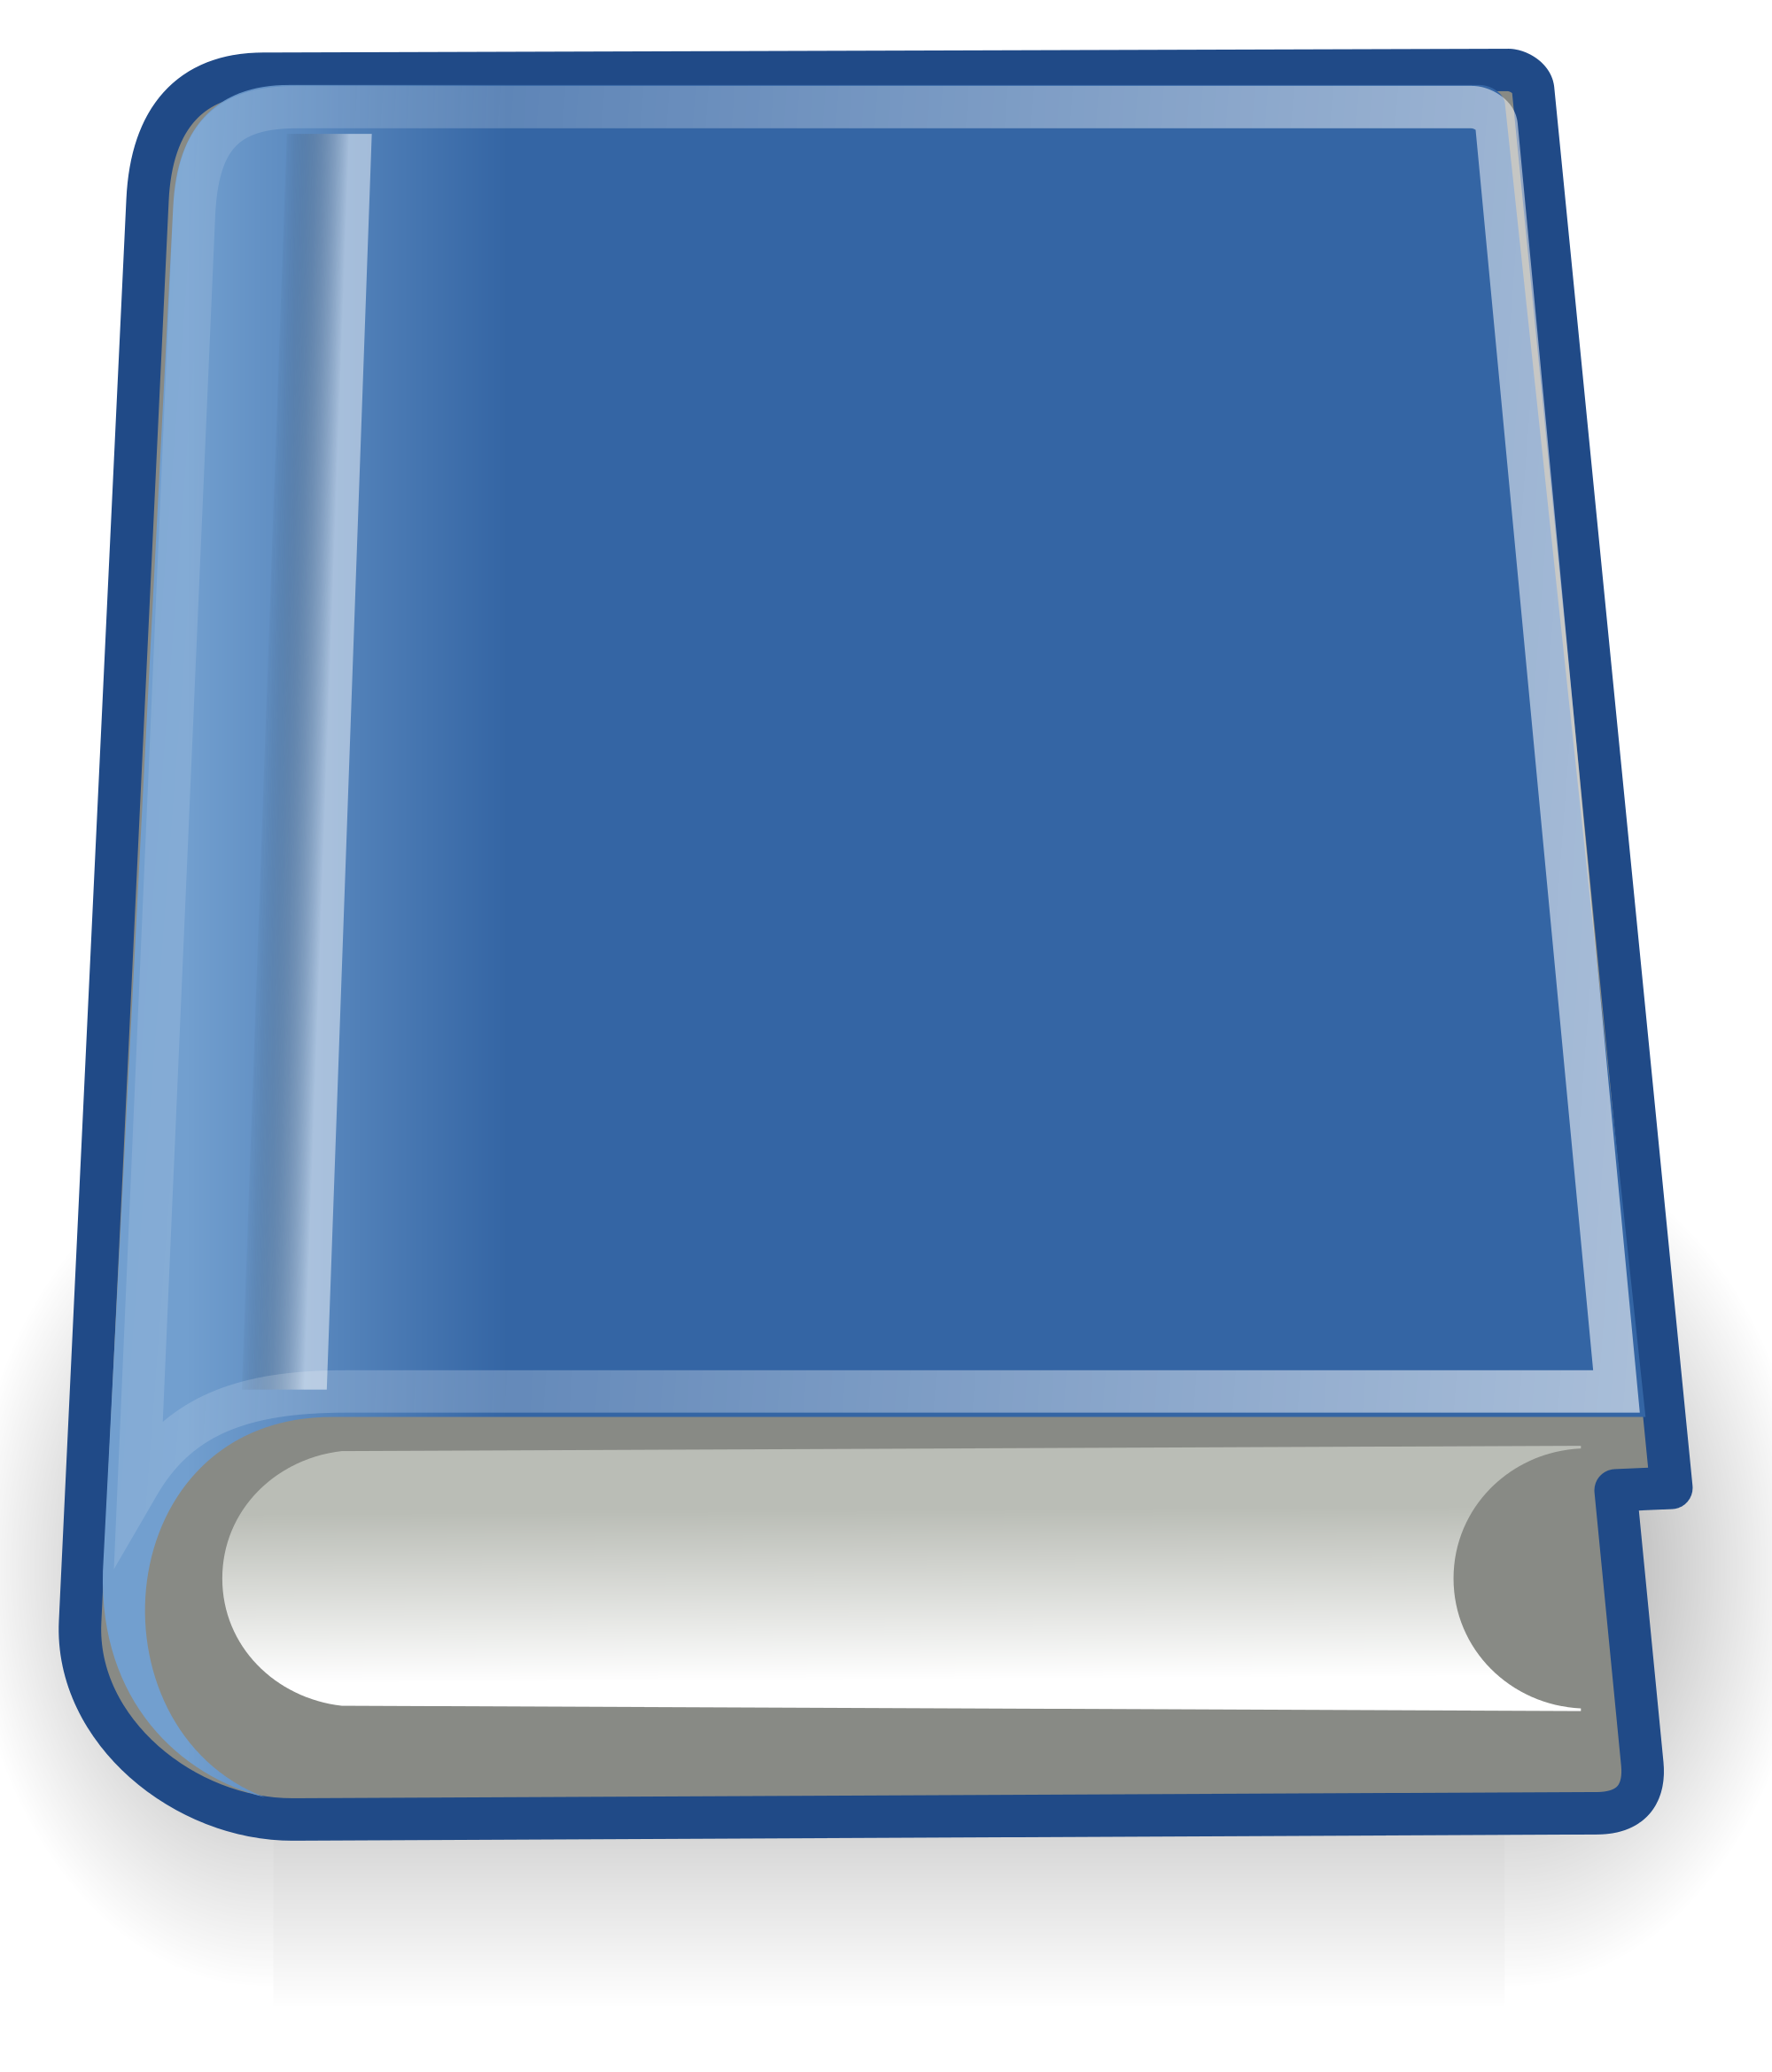 clip art freeuse download Books svg file. Book wikimedia commons open